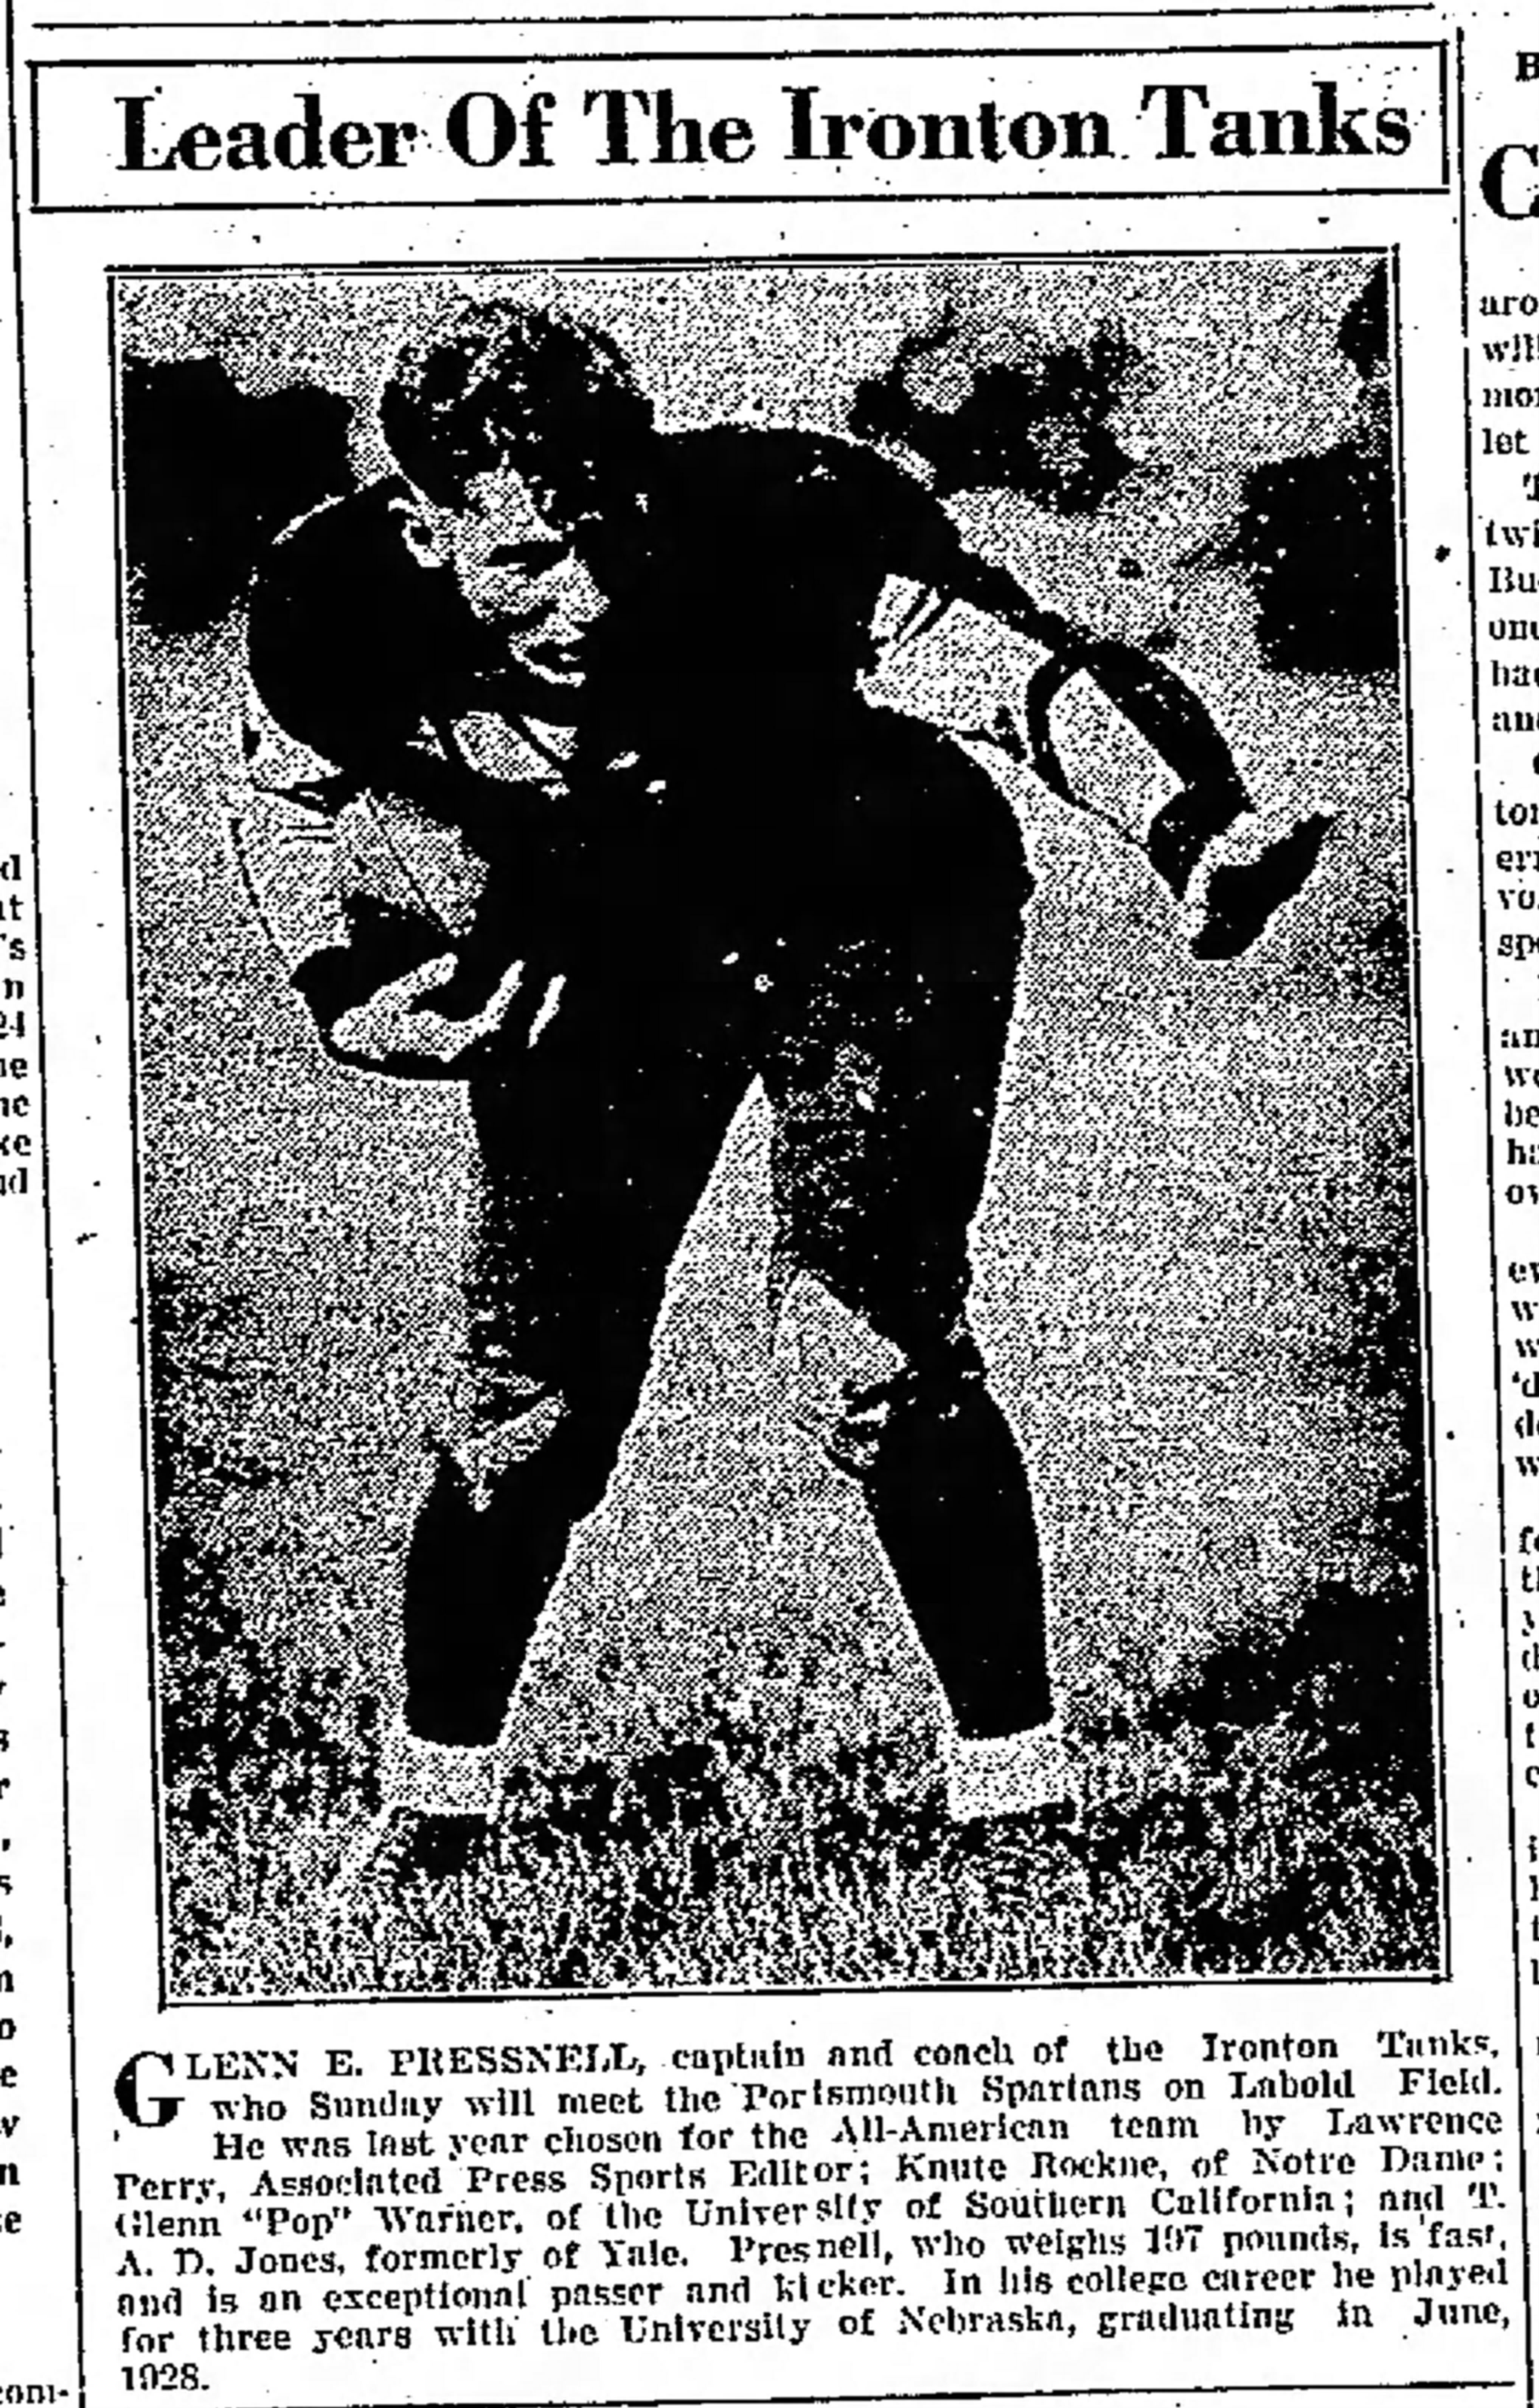 Tanks player Glen Pressnell, Portsmouth Daily Times, October 19, 1928